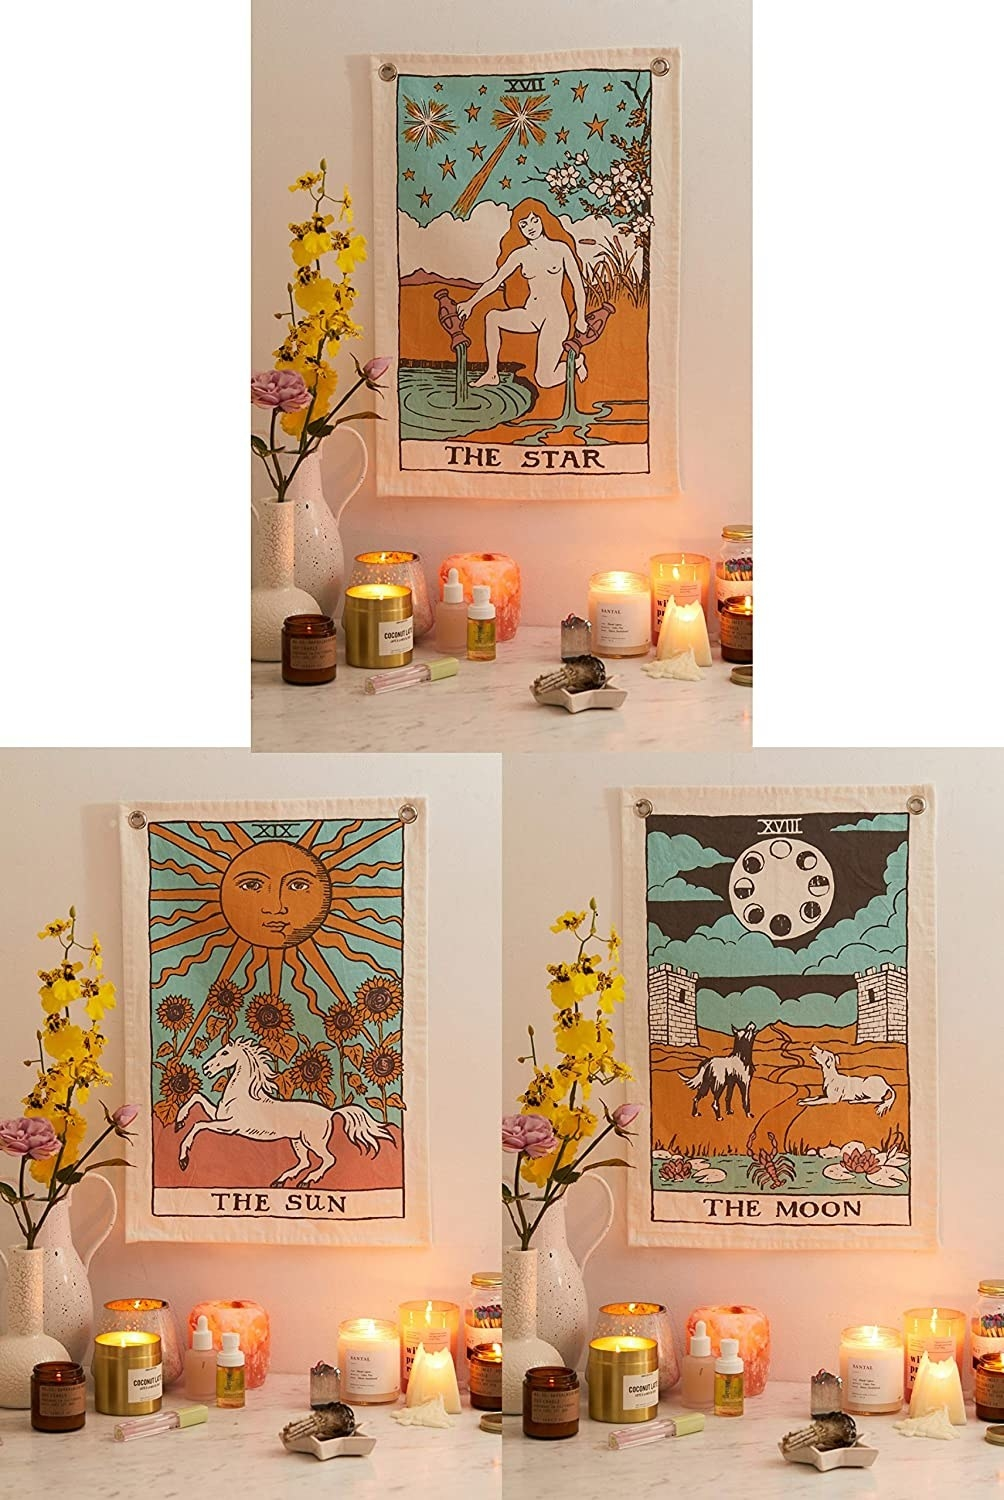 A set of wall hangings with Tarot cards on them surrounded by candles and flowers